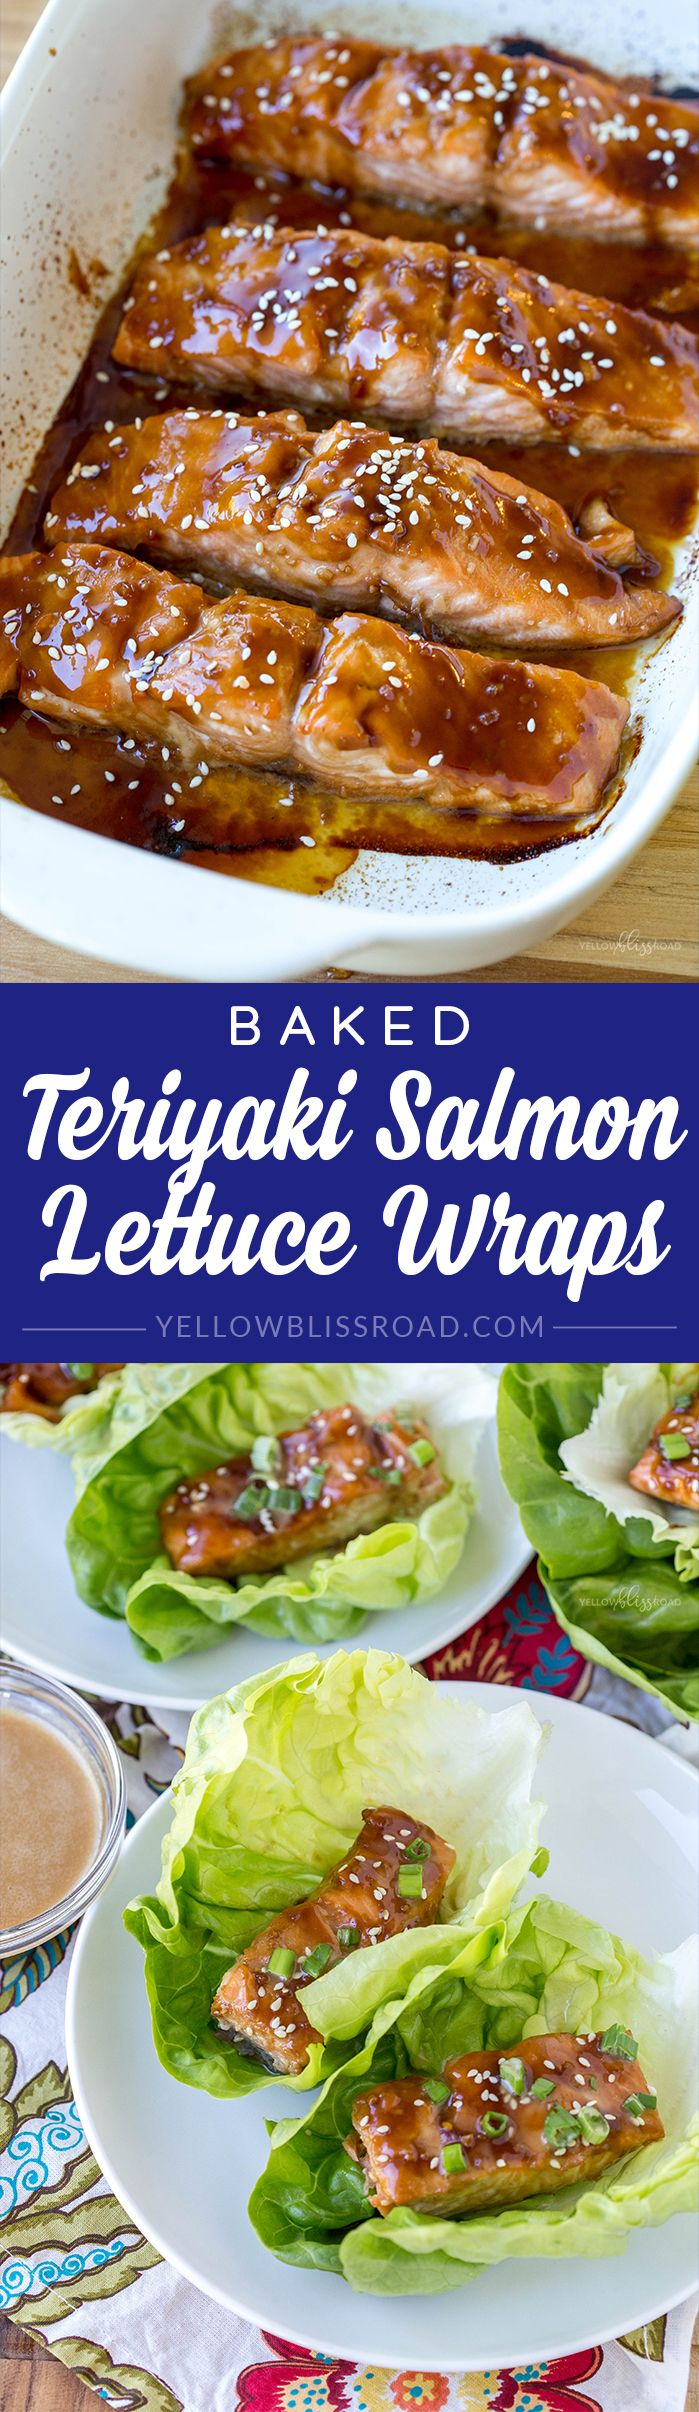 Tender, flaky pieces of Baked Teriyaki Salmon are nestled in crisp lettuce wraps. A healthy and light protein-packed meal for lunch of dinner.